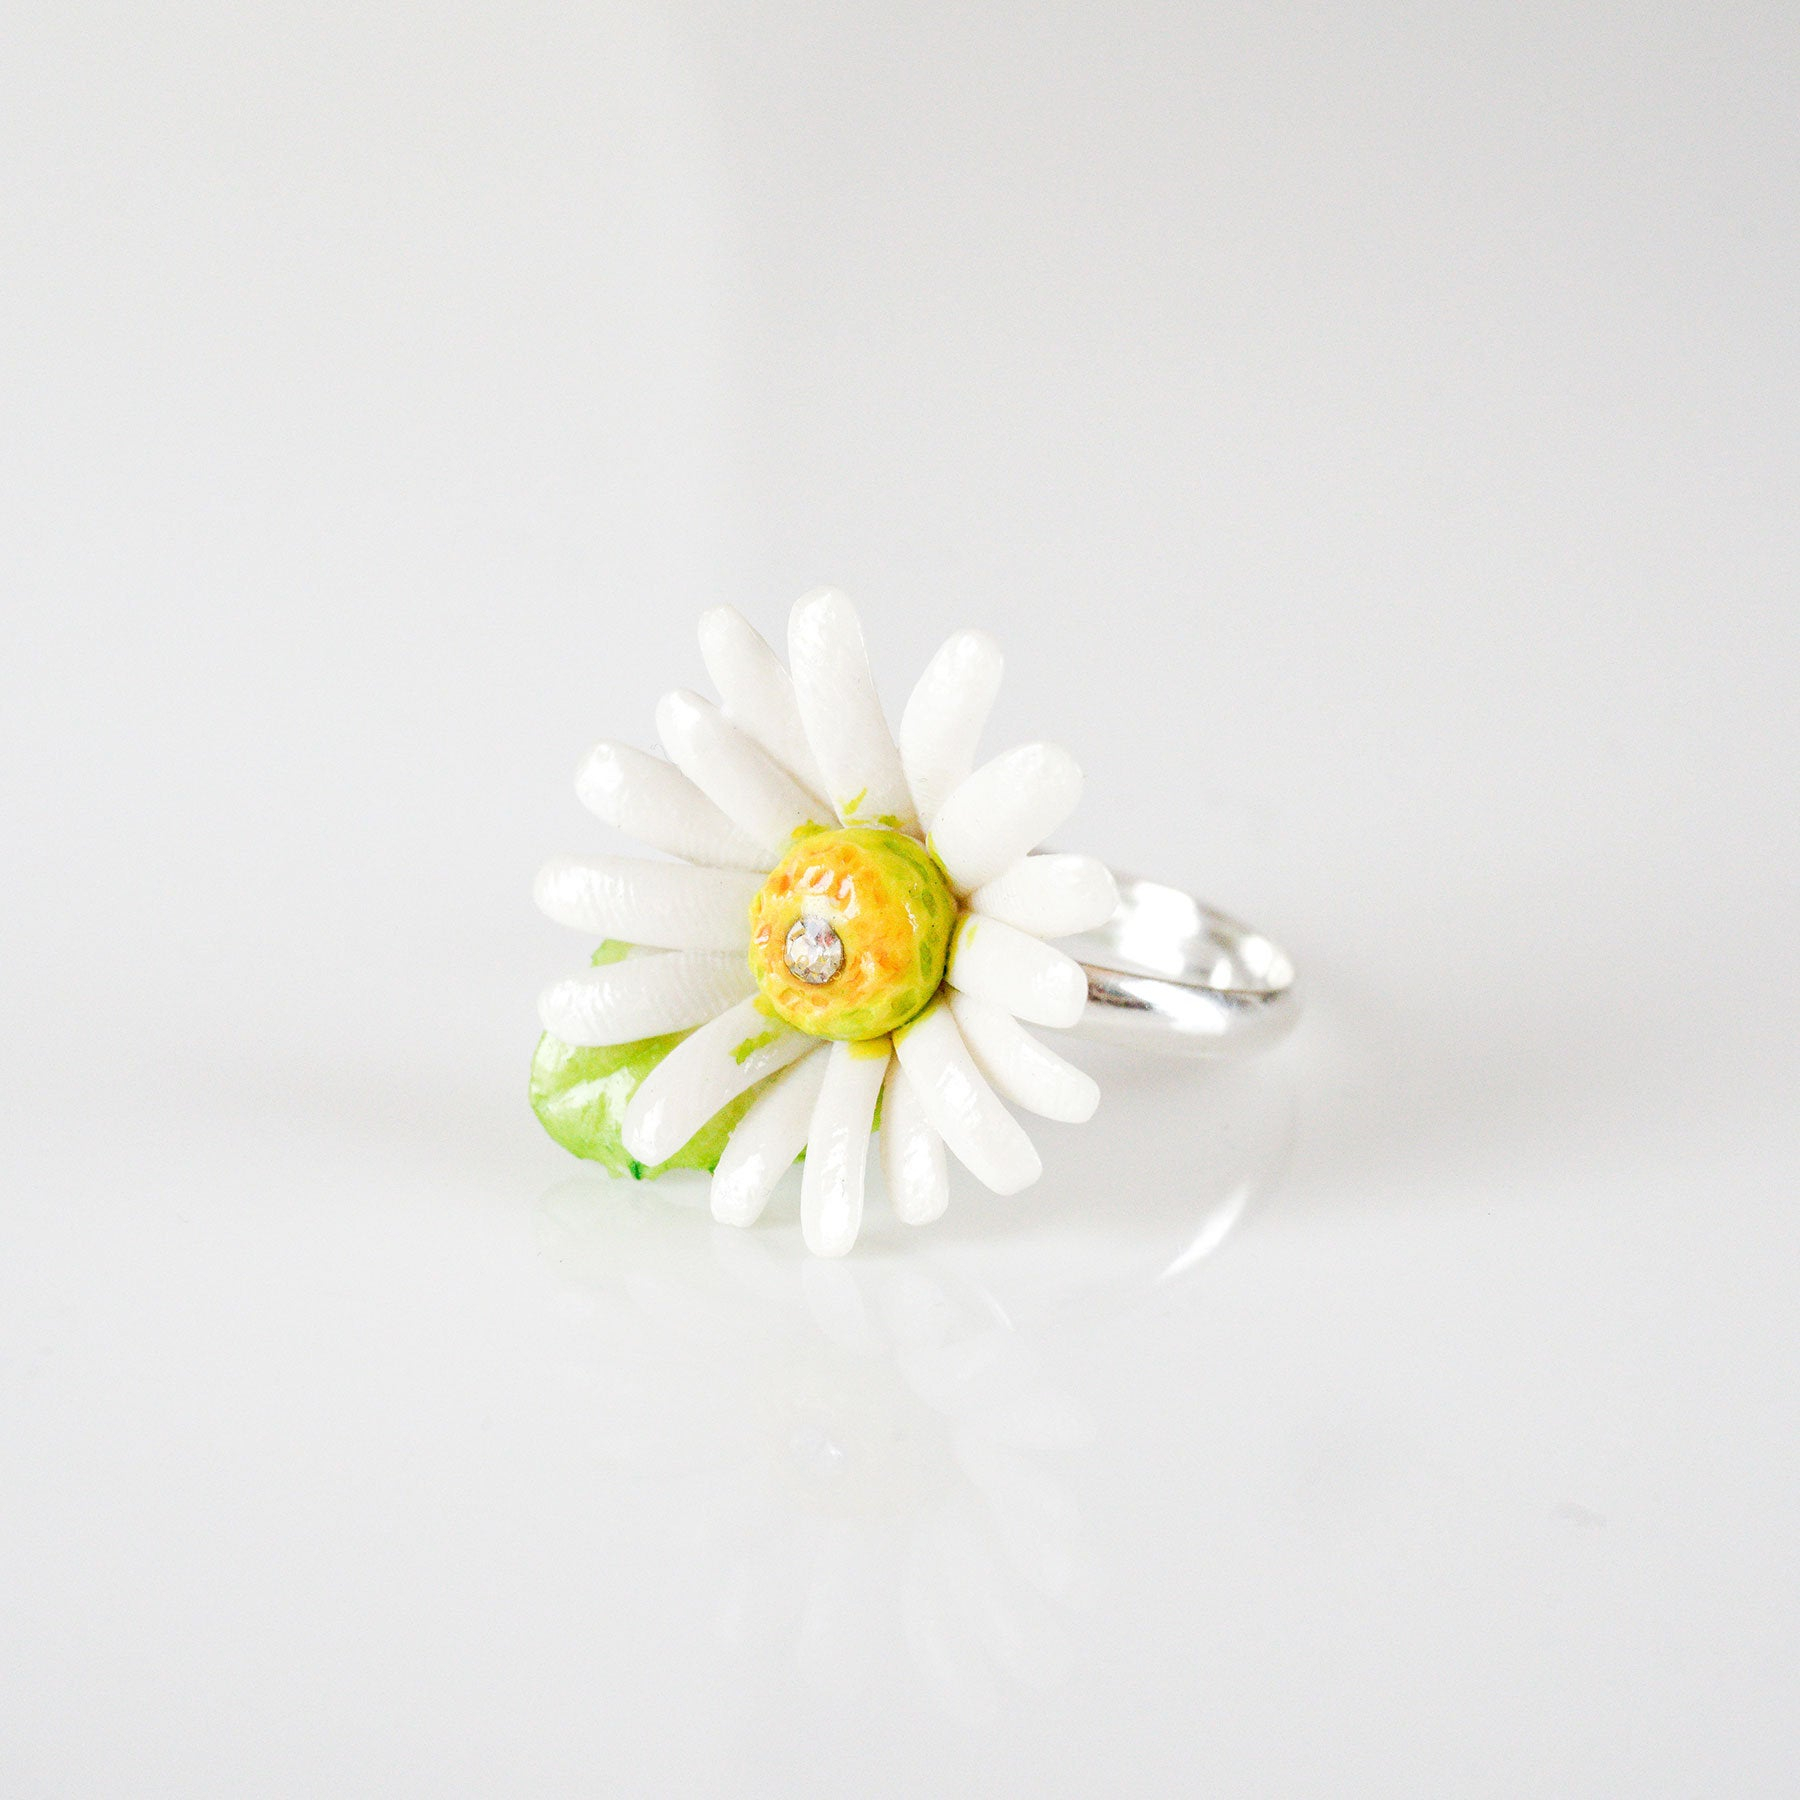 Porcelain Daisy Ring/ Daisy Ring/ Ring/ Porcelain Ring/ Daisy/ Flower Ring/ Flower Jewellery/ Stacking Ring Regarding Most Recent Daisy Flower Rings (View 15 of 25)